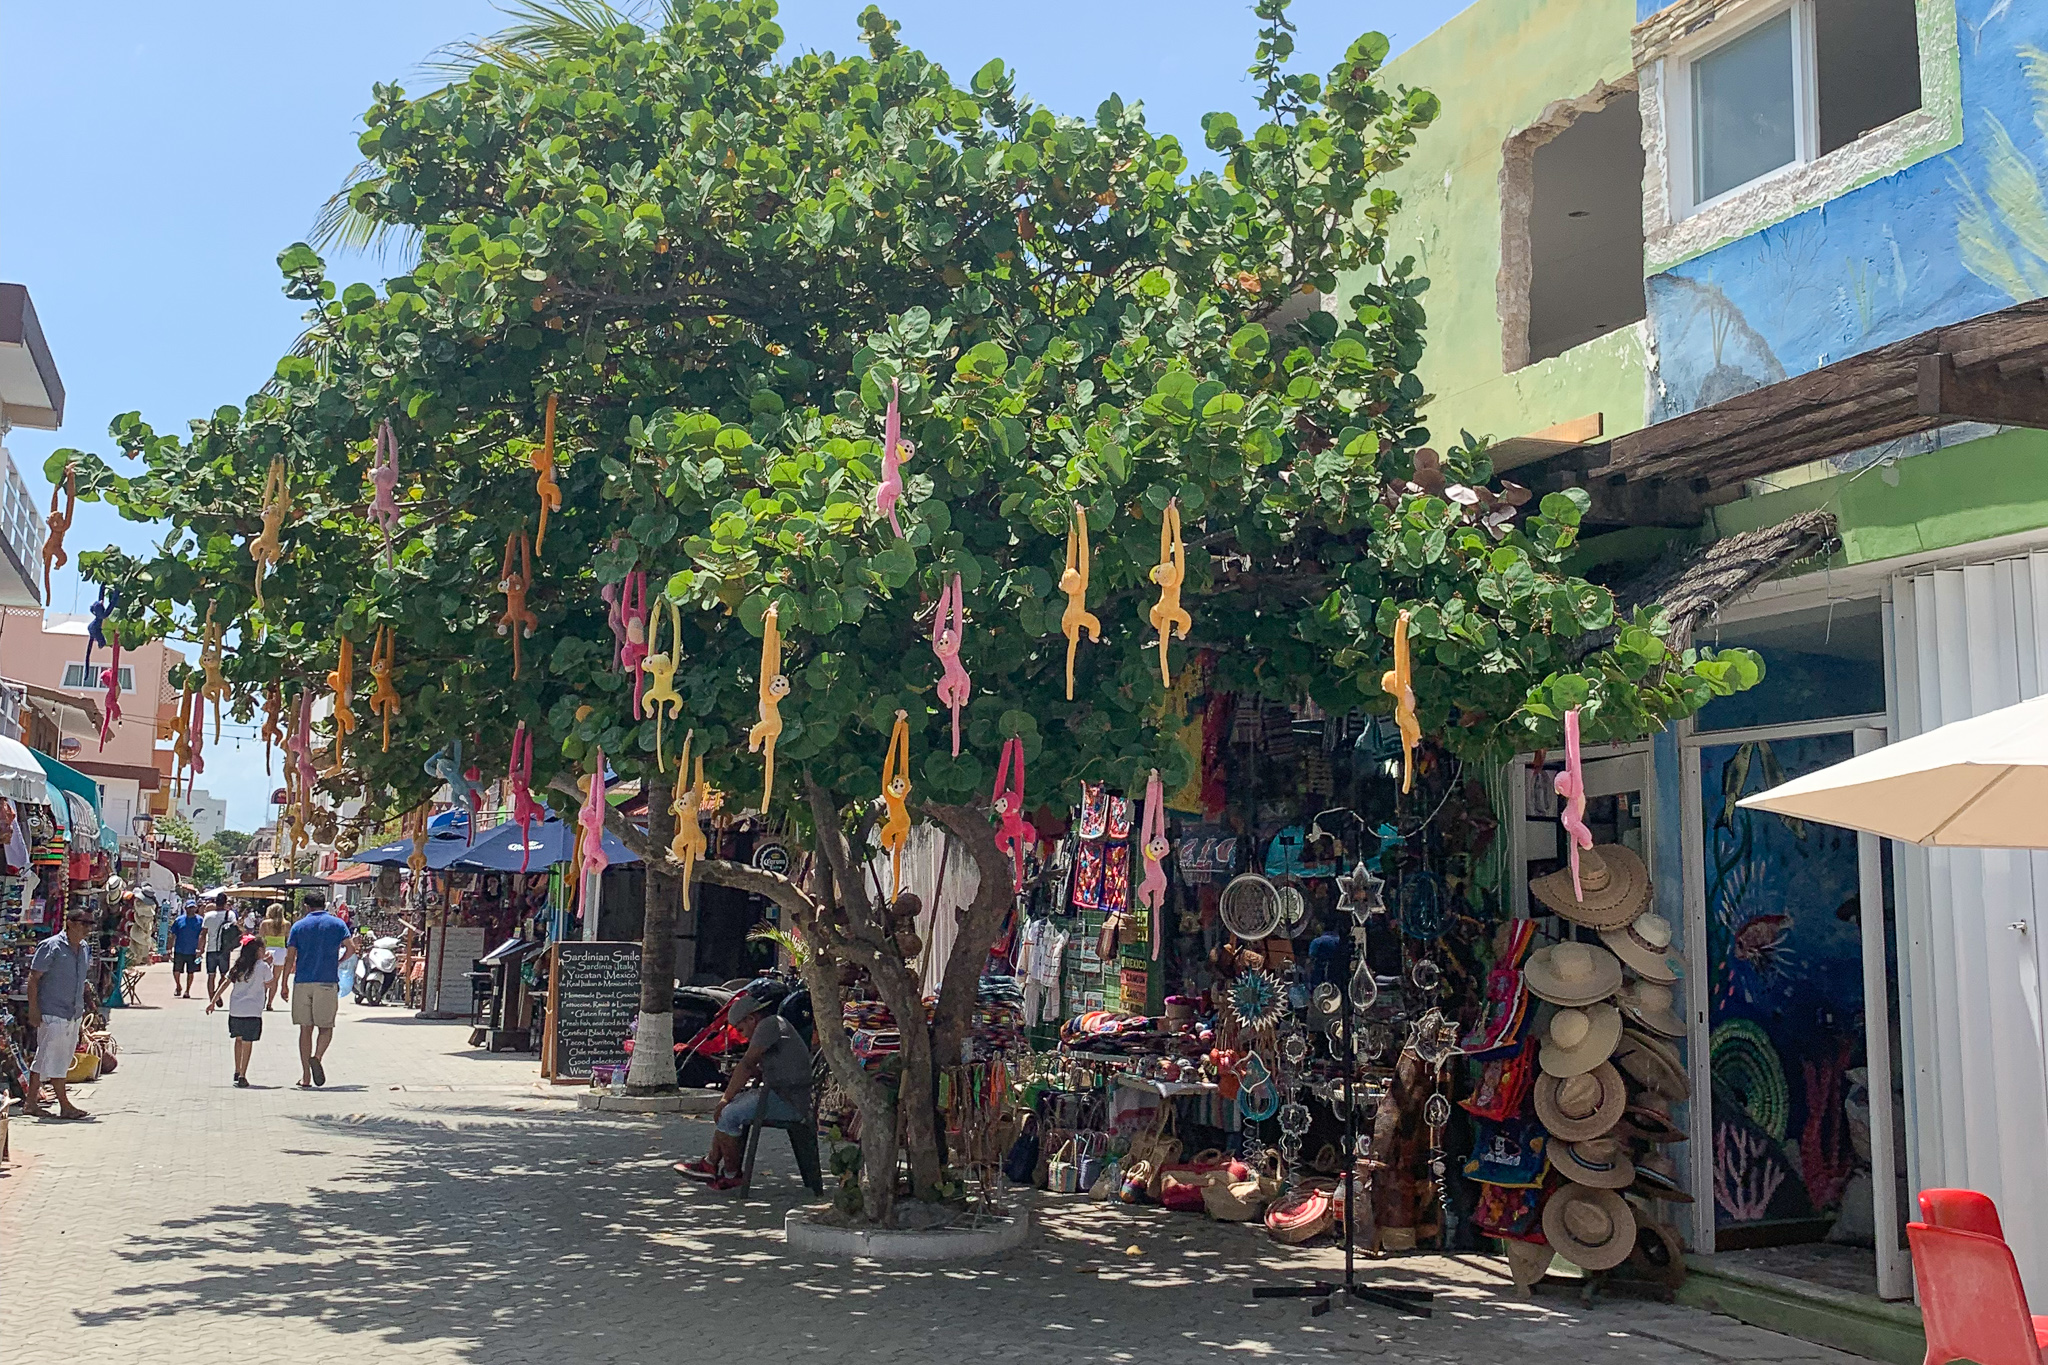 The streets of Isla Mujeres are adorable, and this tree filled with monkeys is just one cute moment.